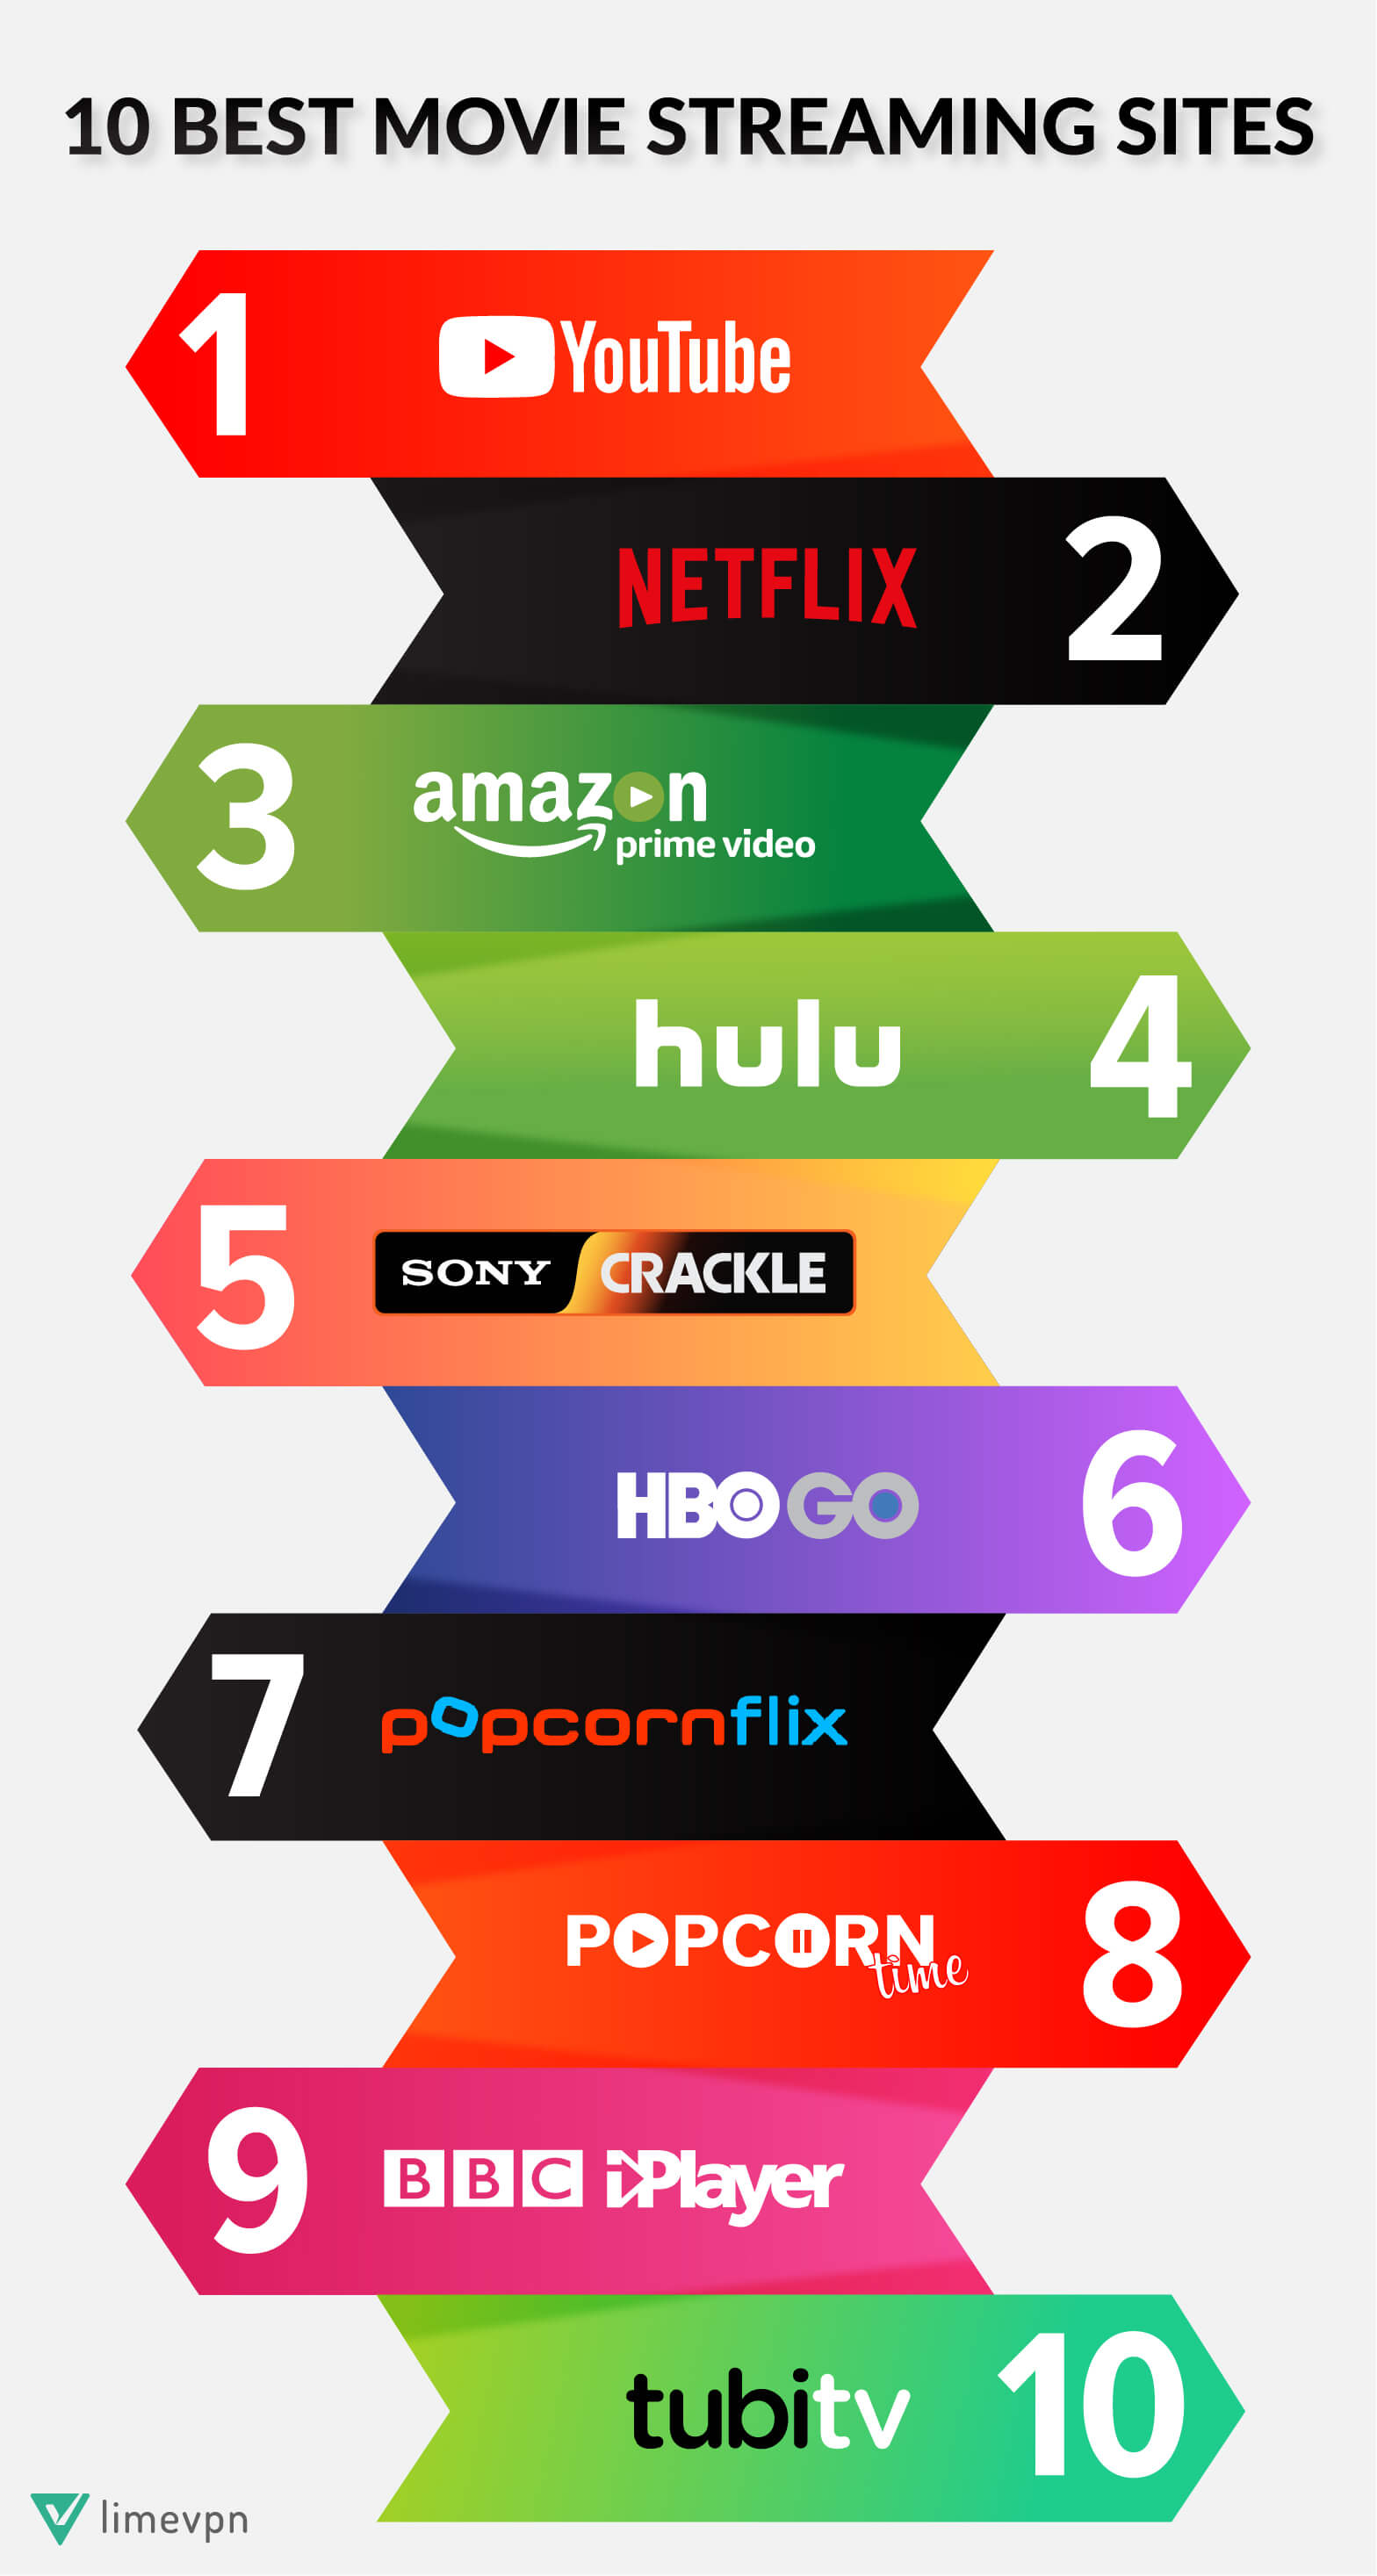 movie streaming sites in 2019